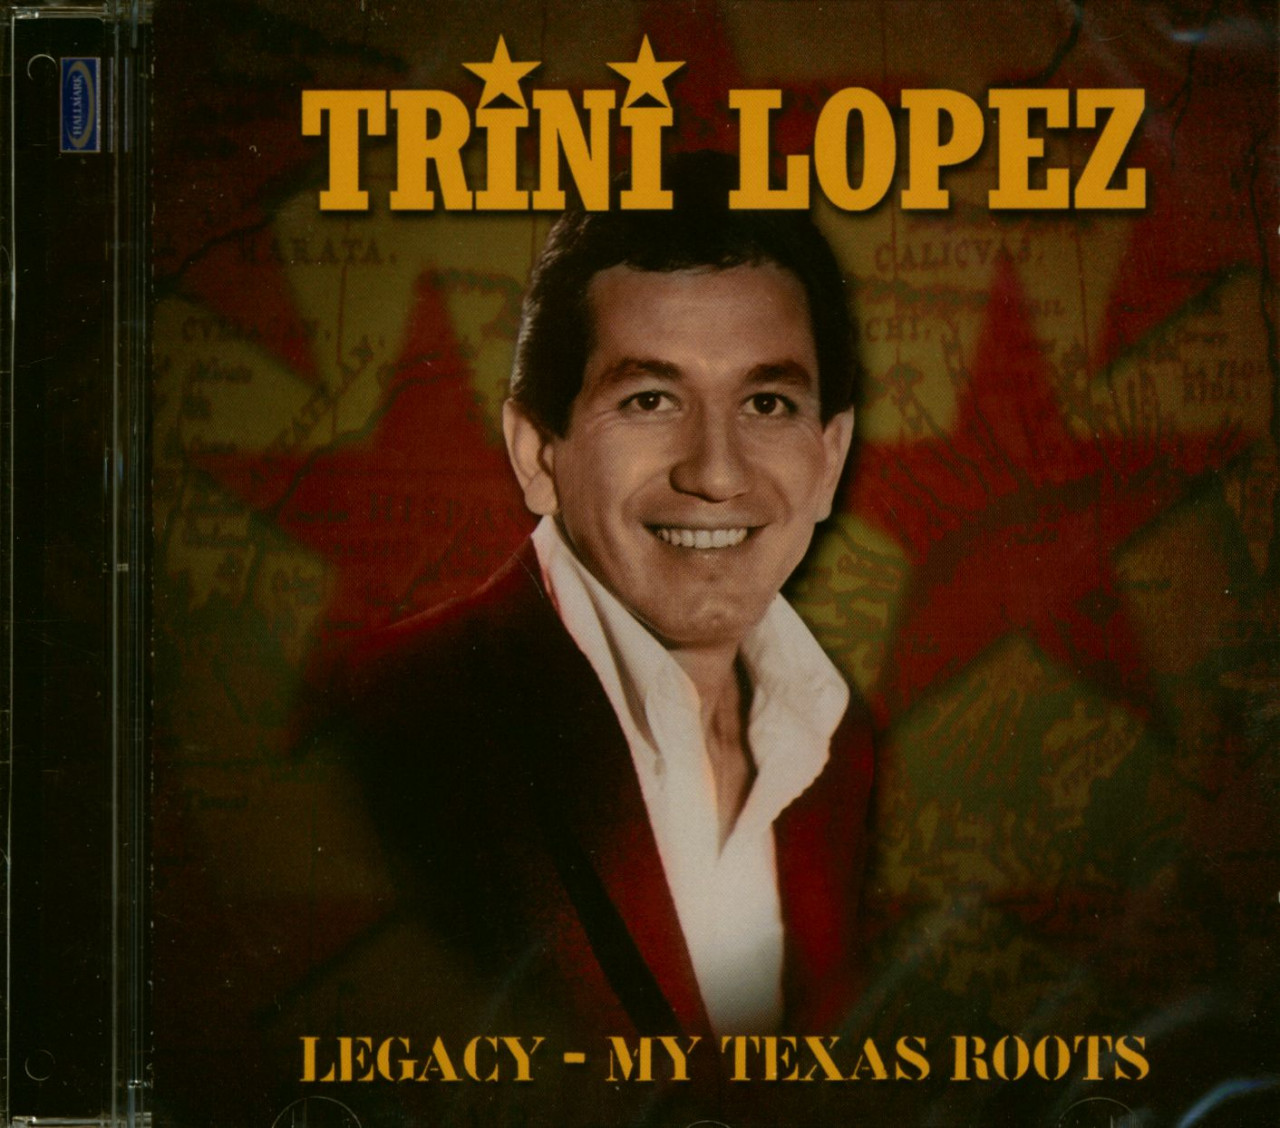 Trini Lopez - Legacy - My Texas Roots (CD)